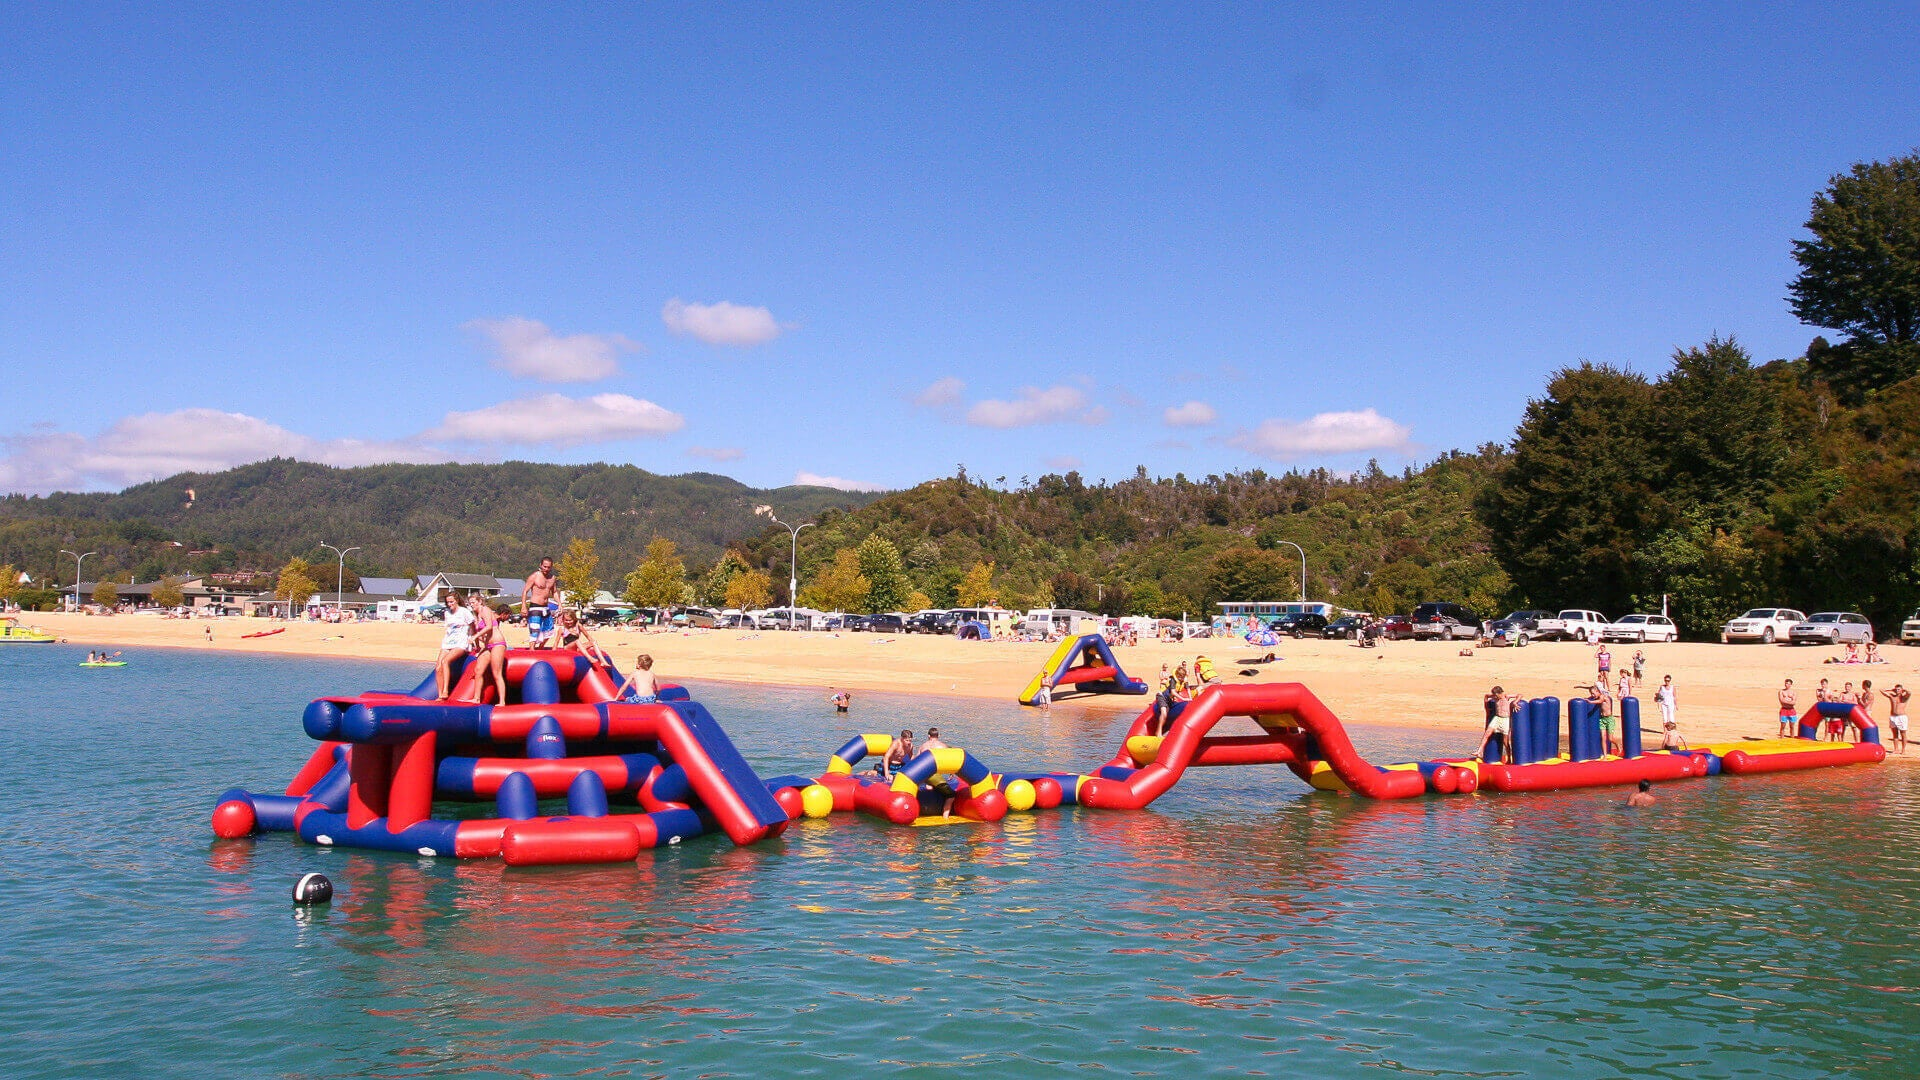 Kaiteri Challenge - Open Water Aqua Adventure - Aflex Technology